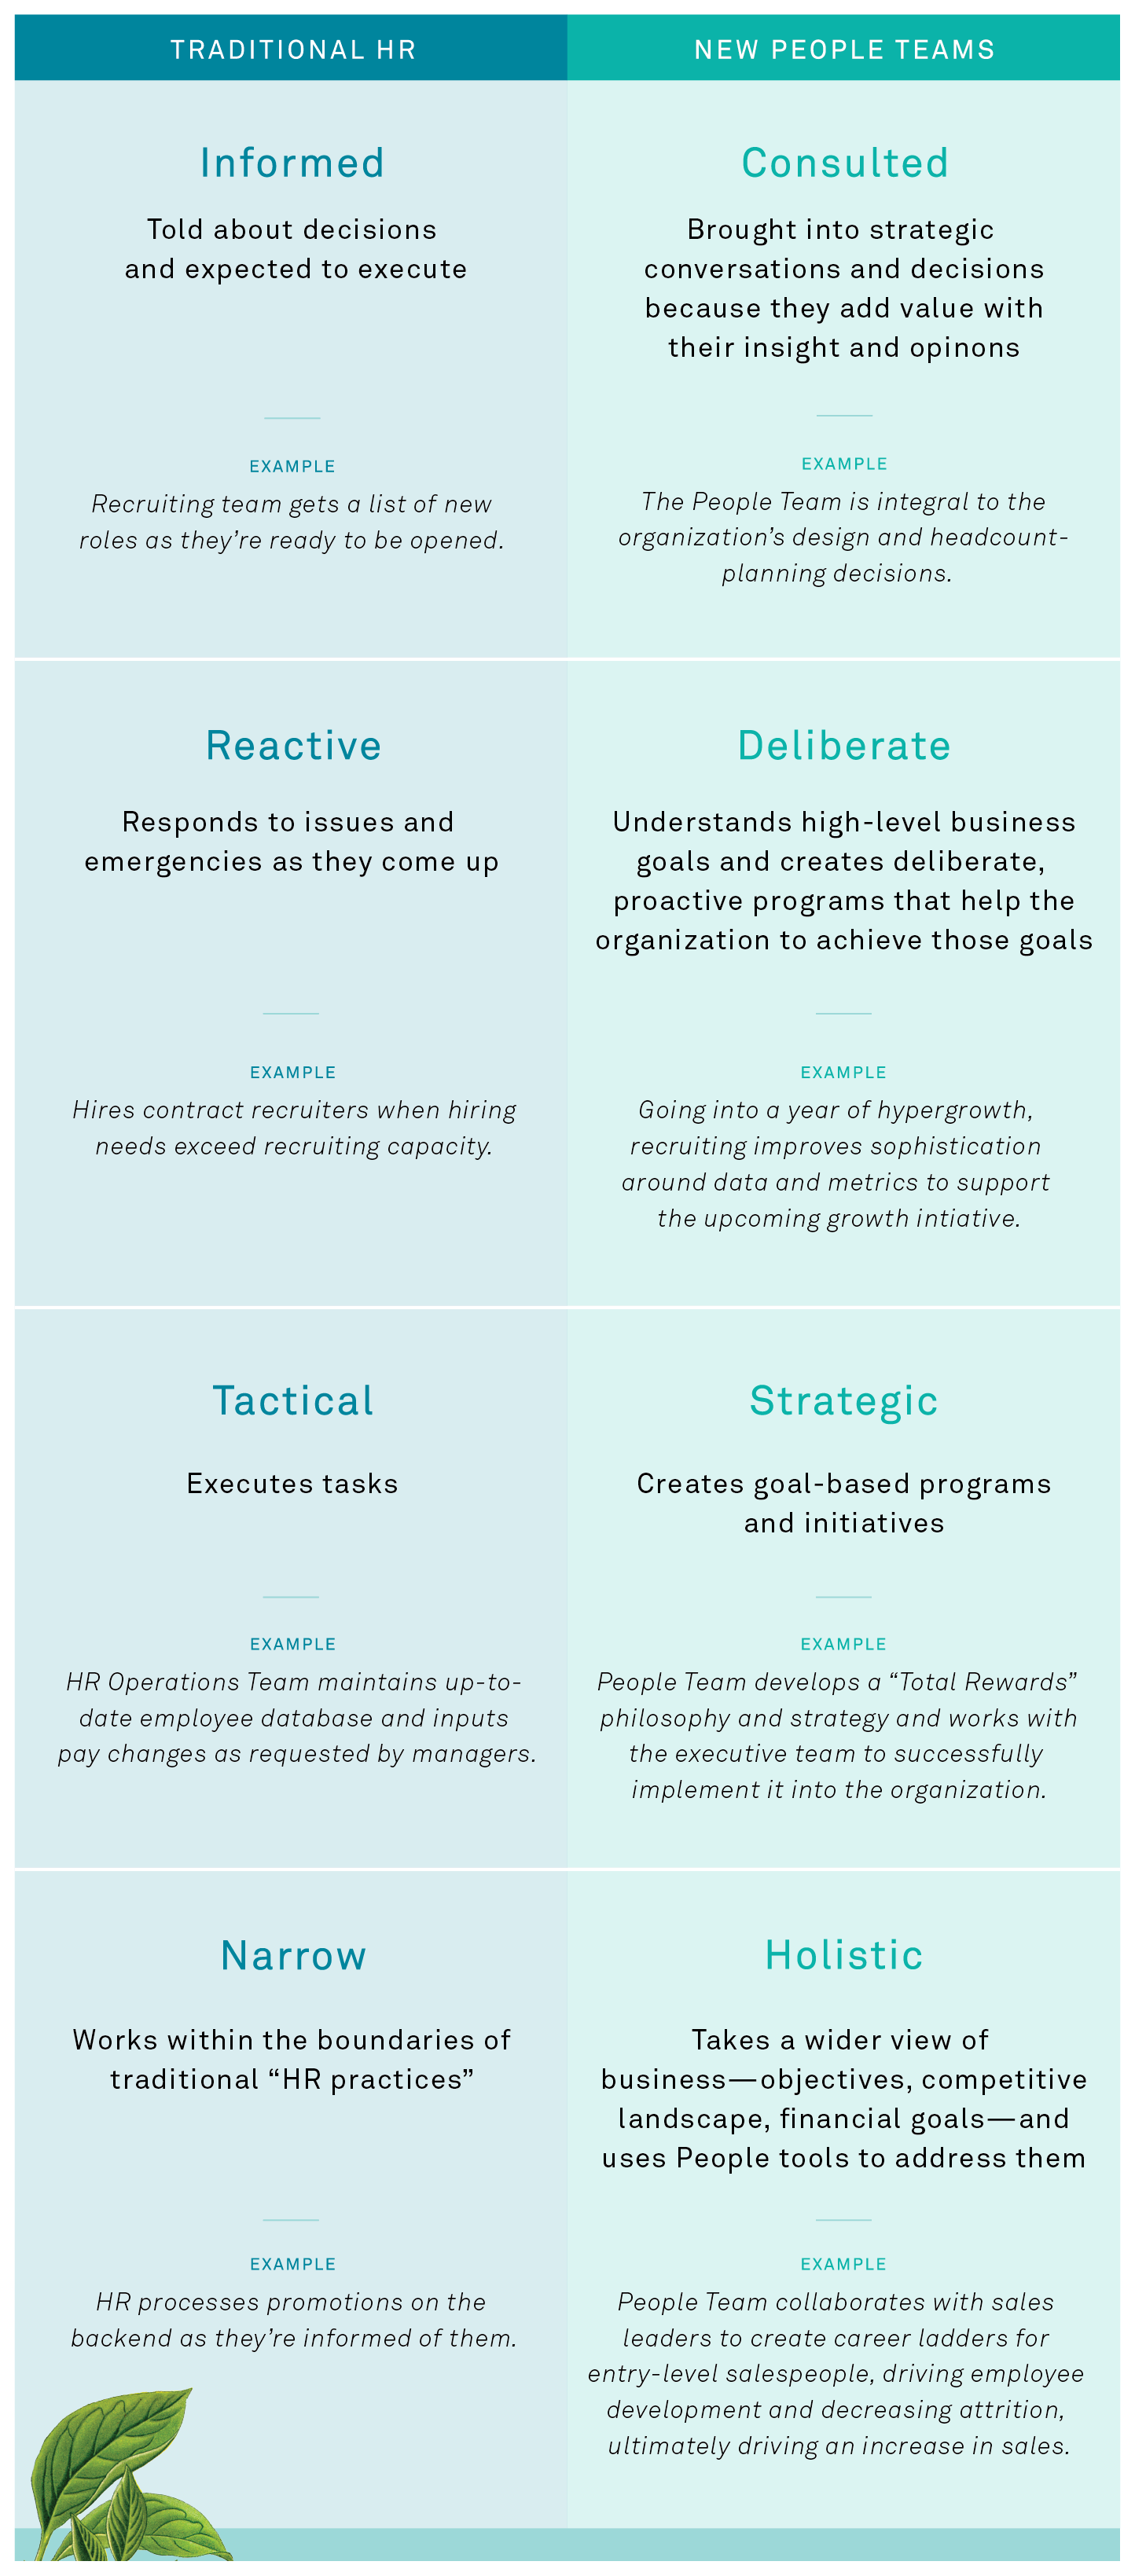 An infographic chart of traditional HR vs New People Teams